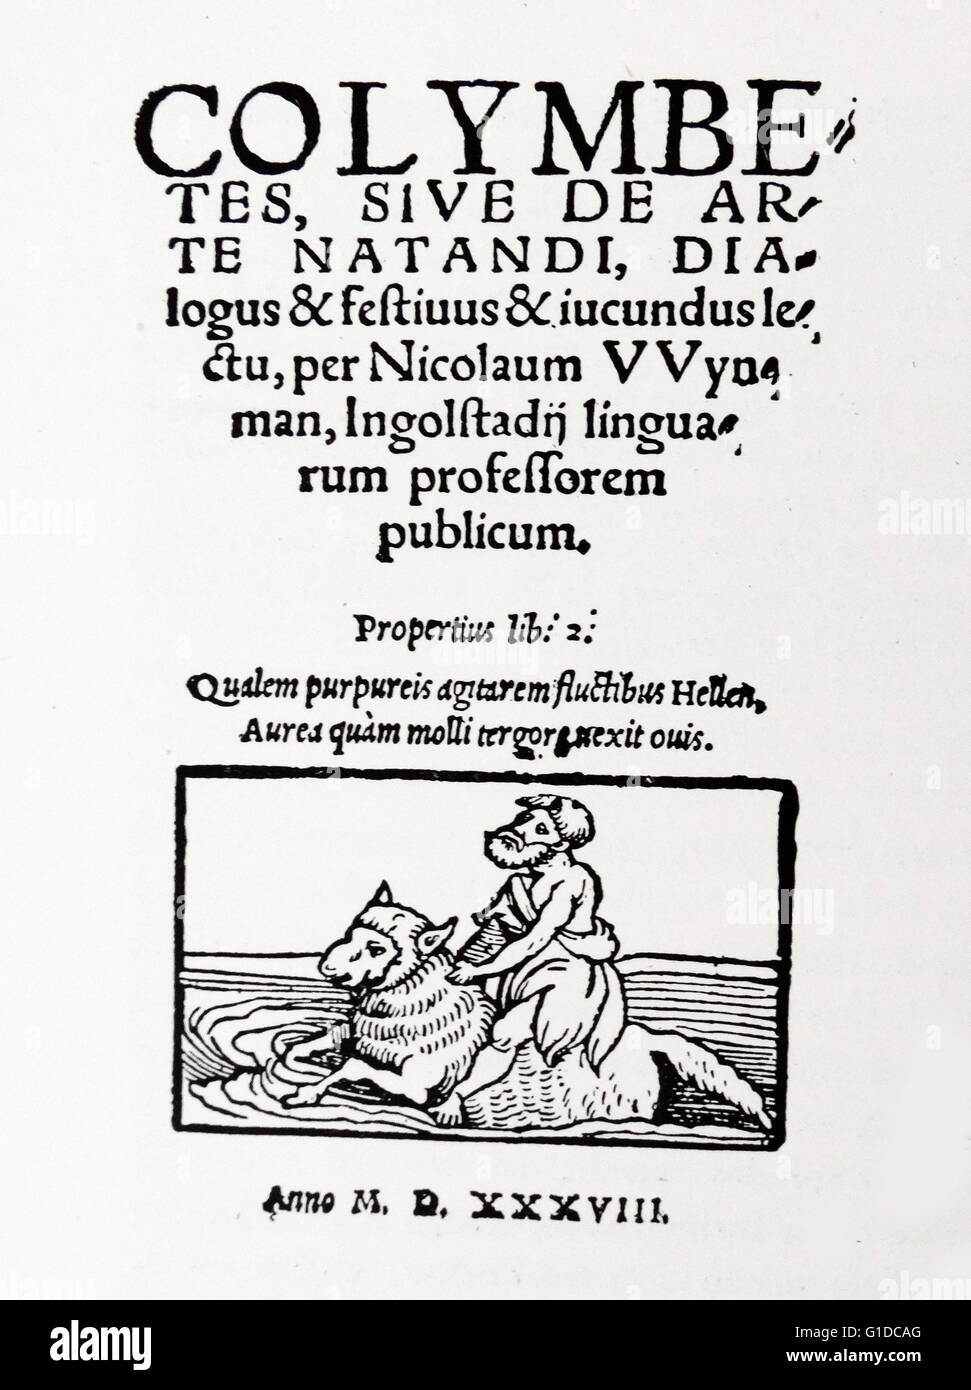 title page of the very first book on swimming dated th century stock photo title page of the very first book on swimming dated 16th century